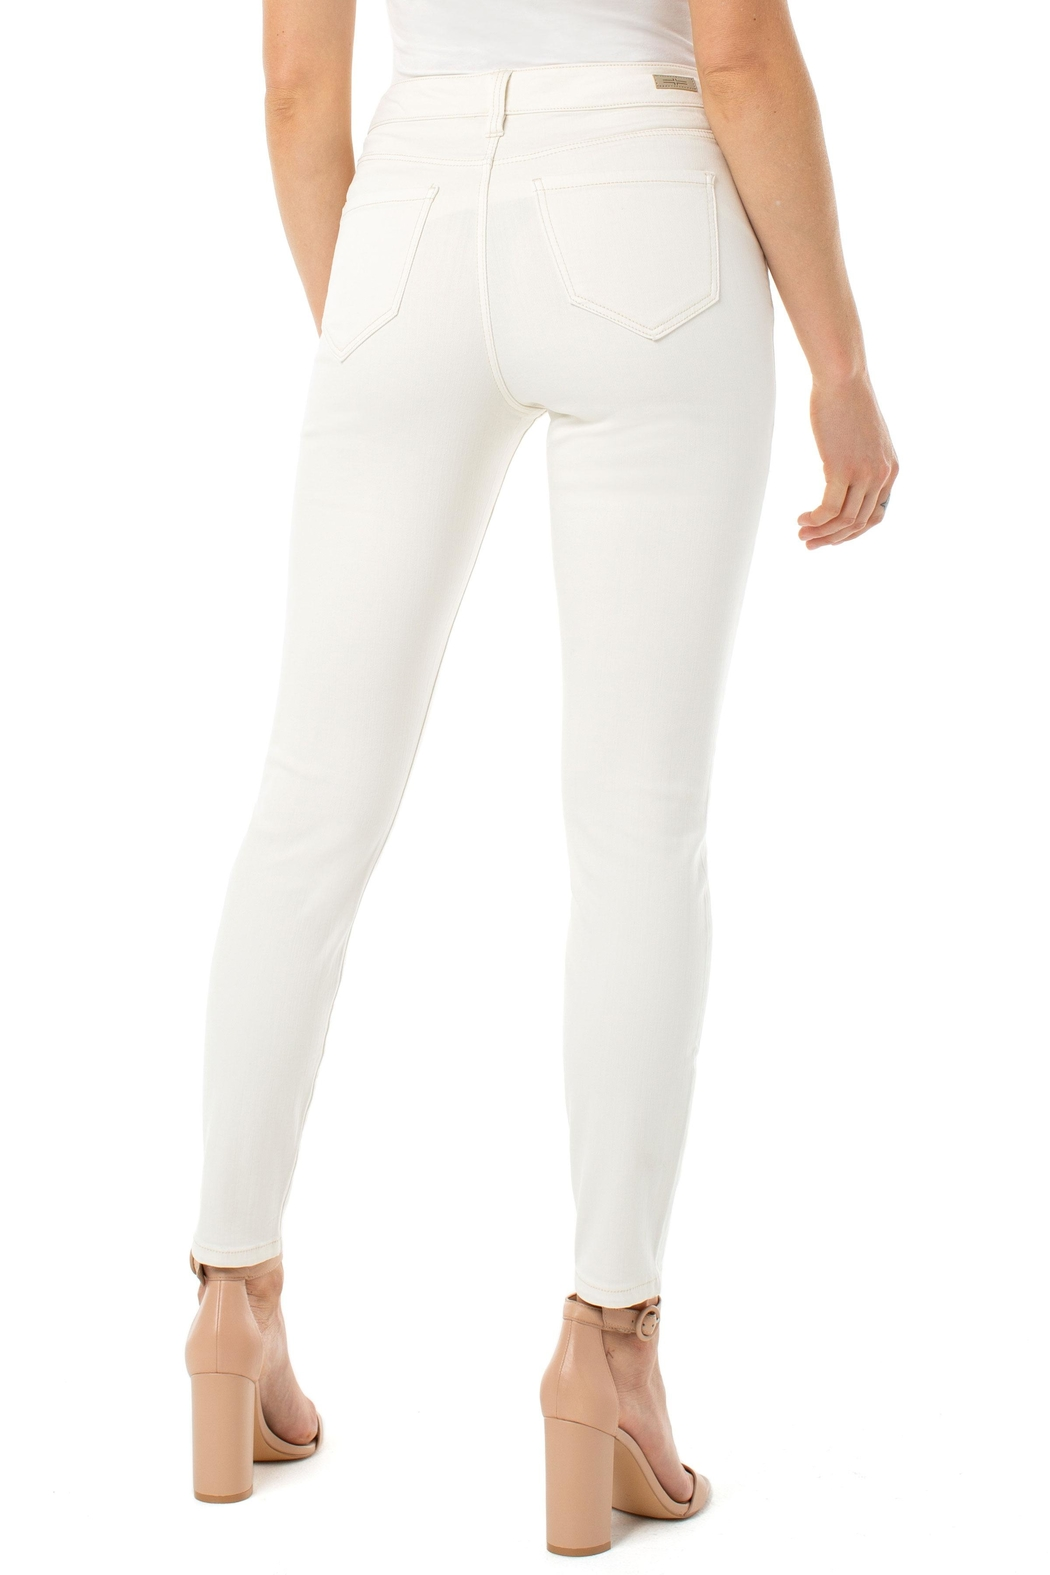 Liverpool Abby Ankle Skinny Jeans - Side Cropped Image